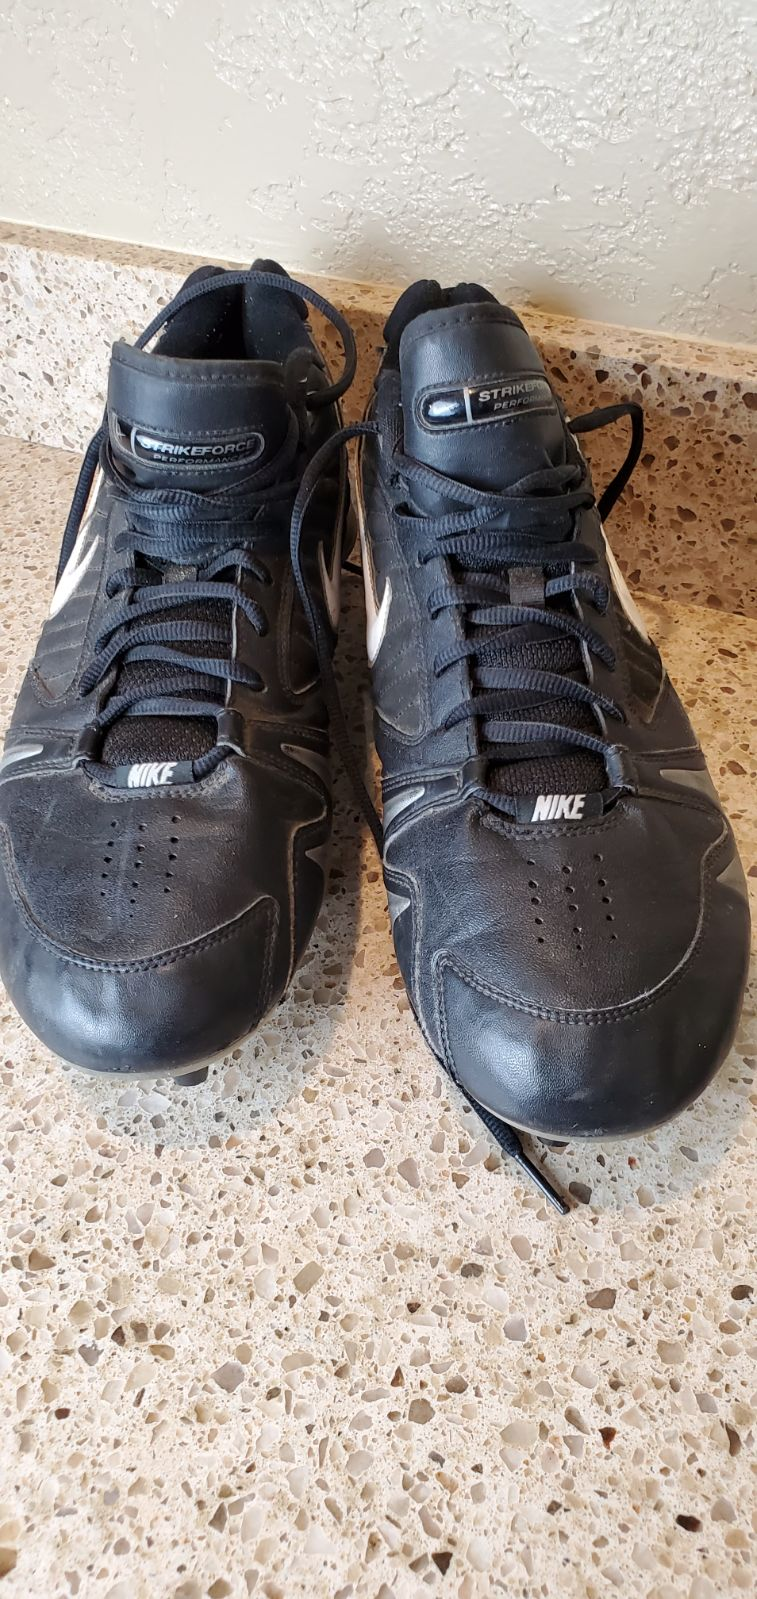 Nike size 12 soccer cleats